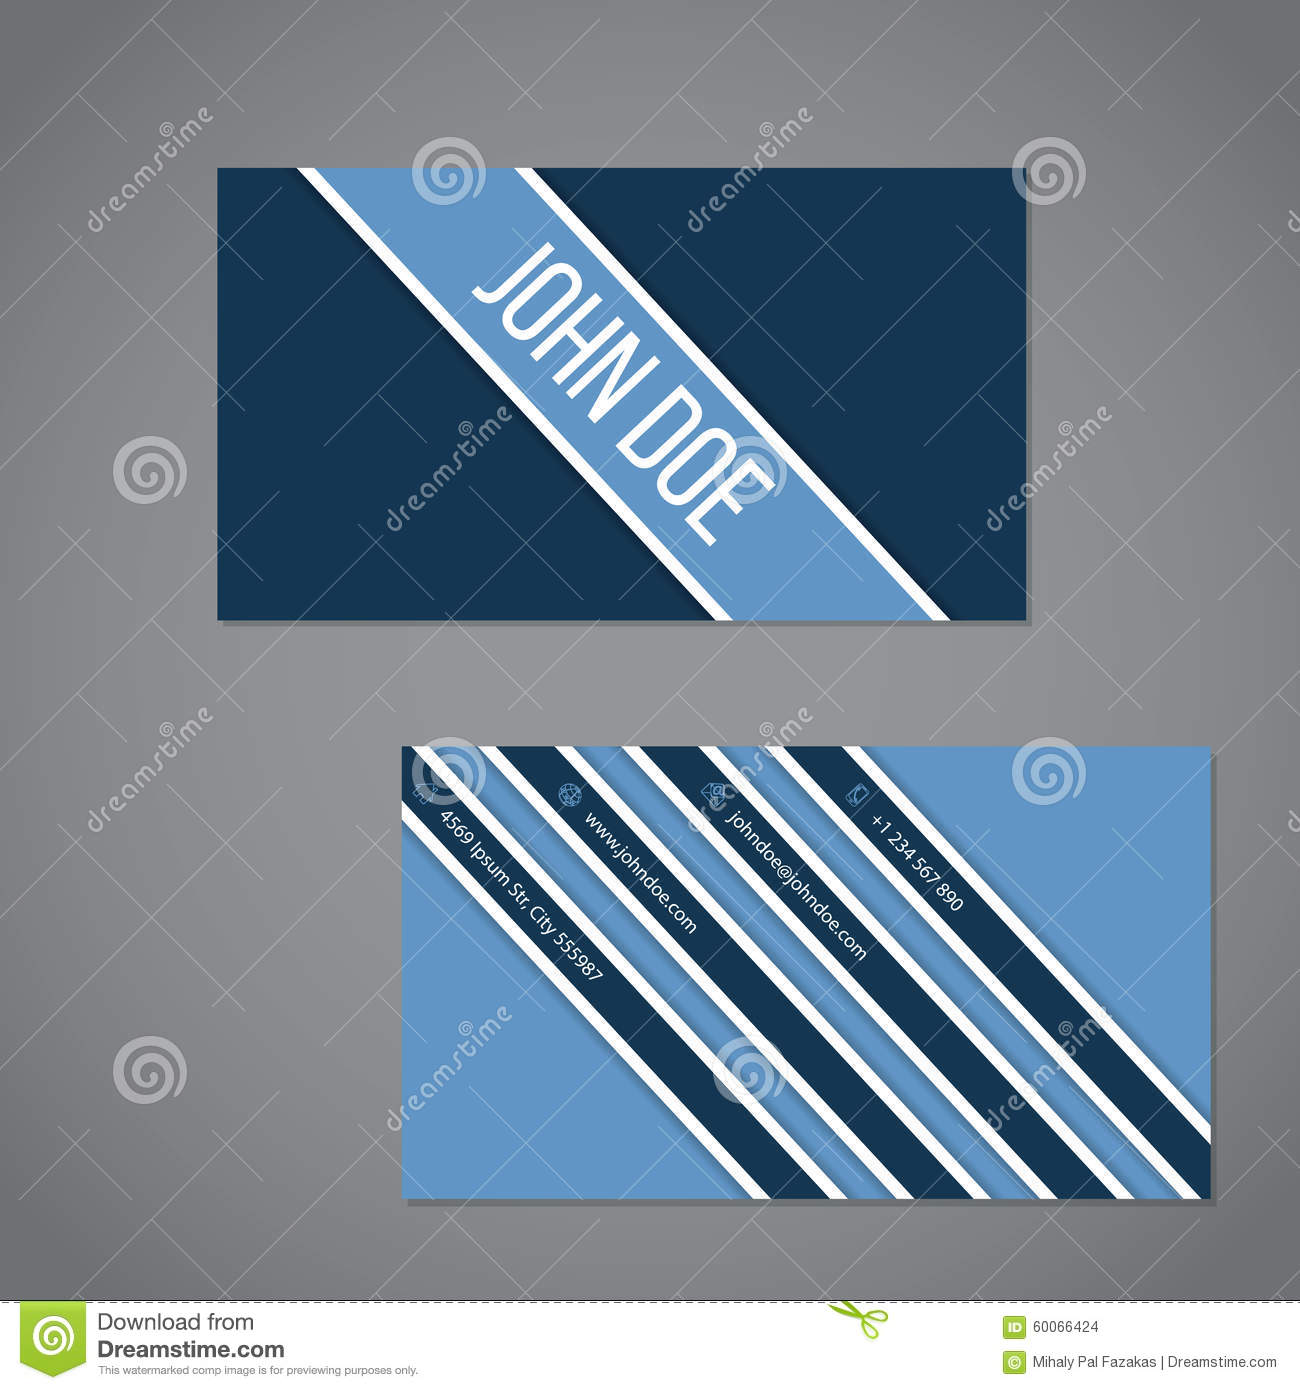 Simplistic Business Card With Stripe Design Stock Vector - Image ...